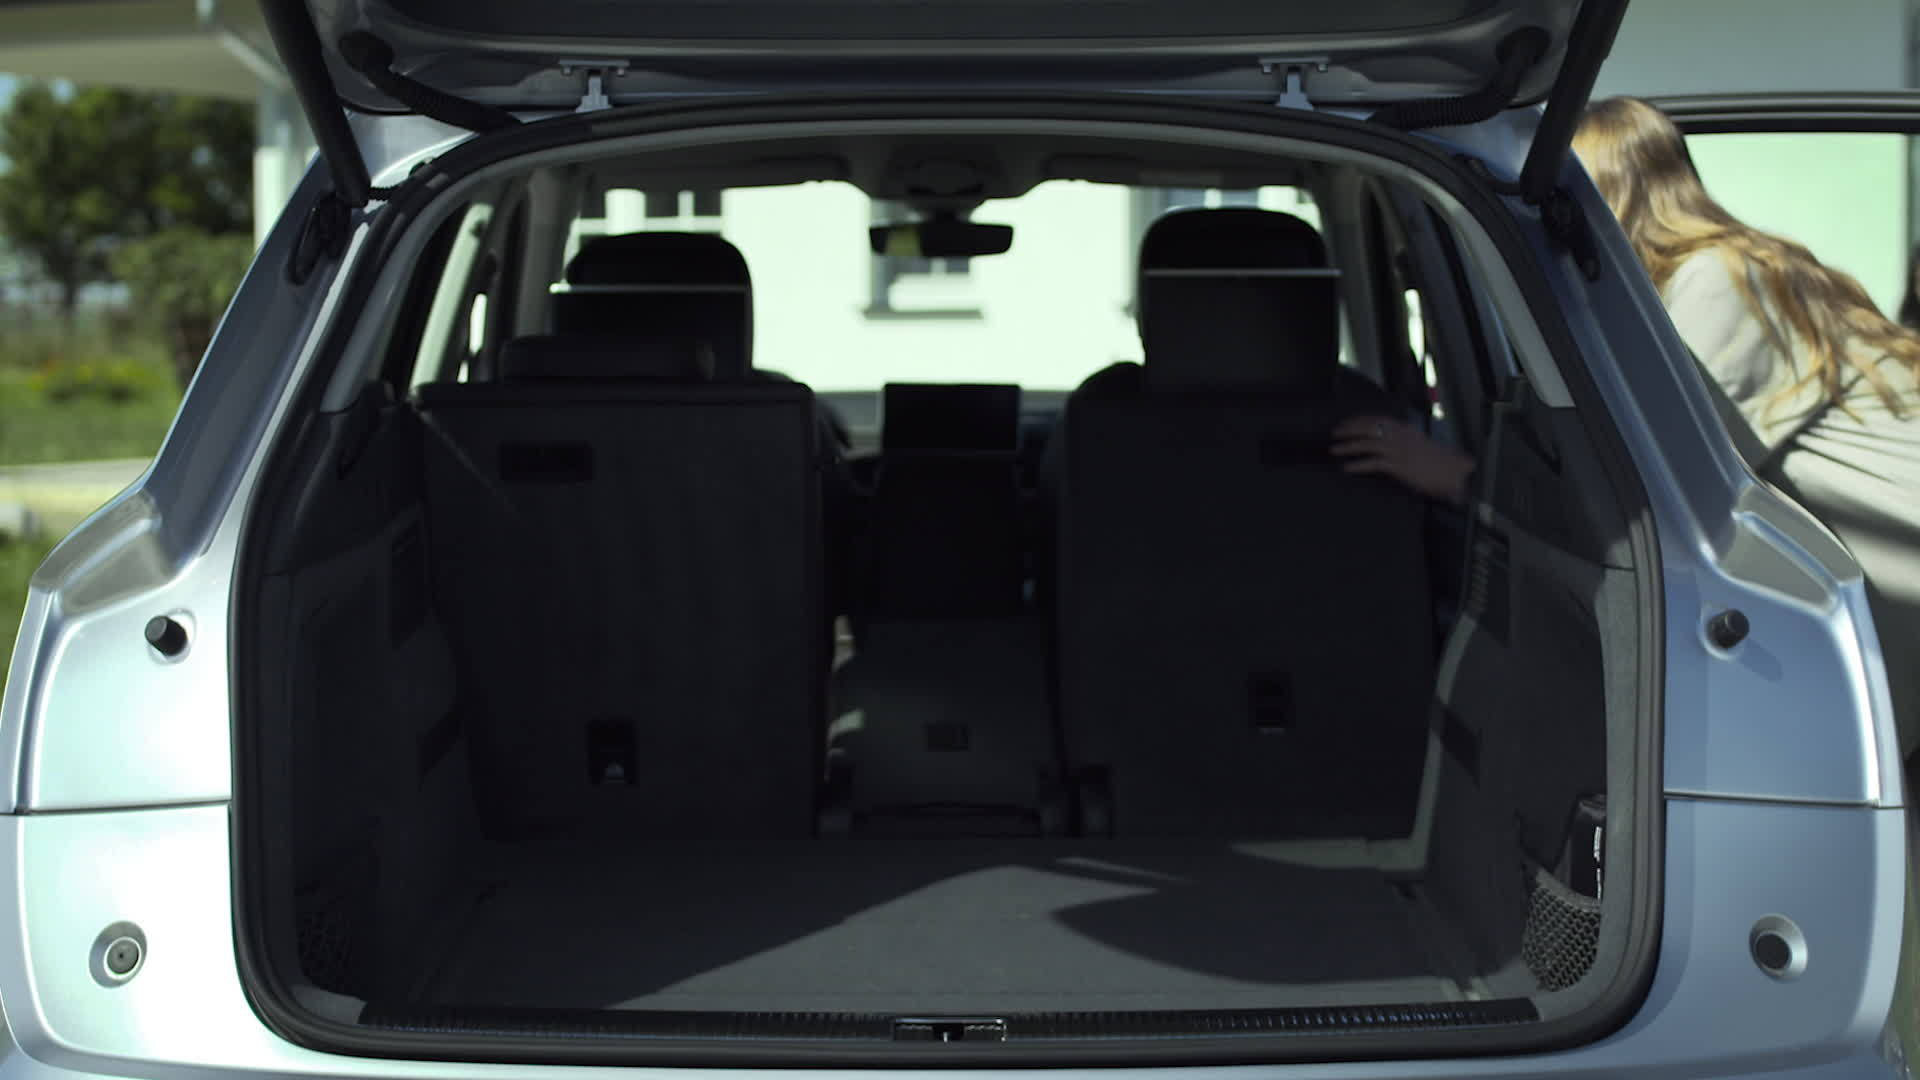 Audi Q5 relies on more room in the trunk